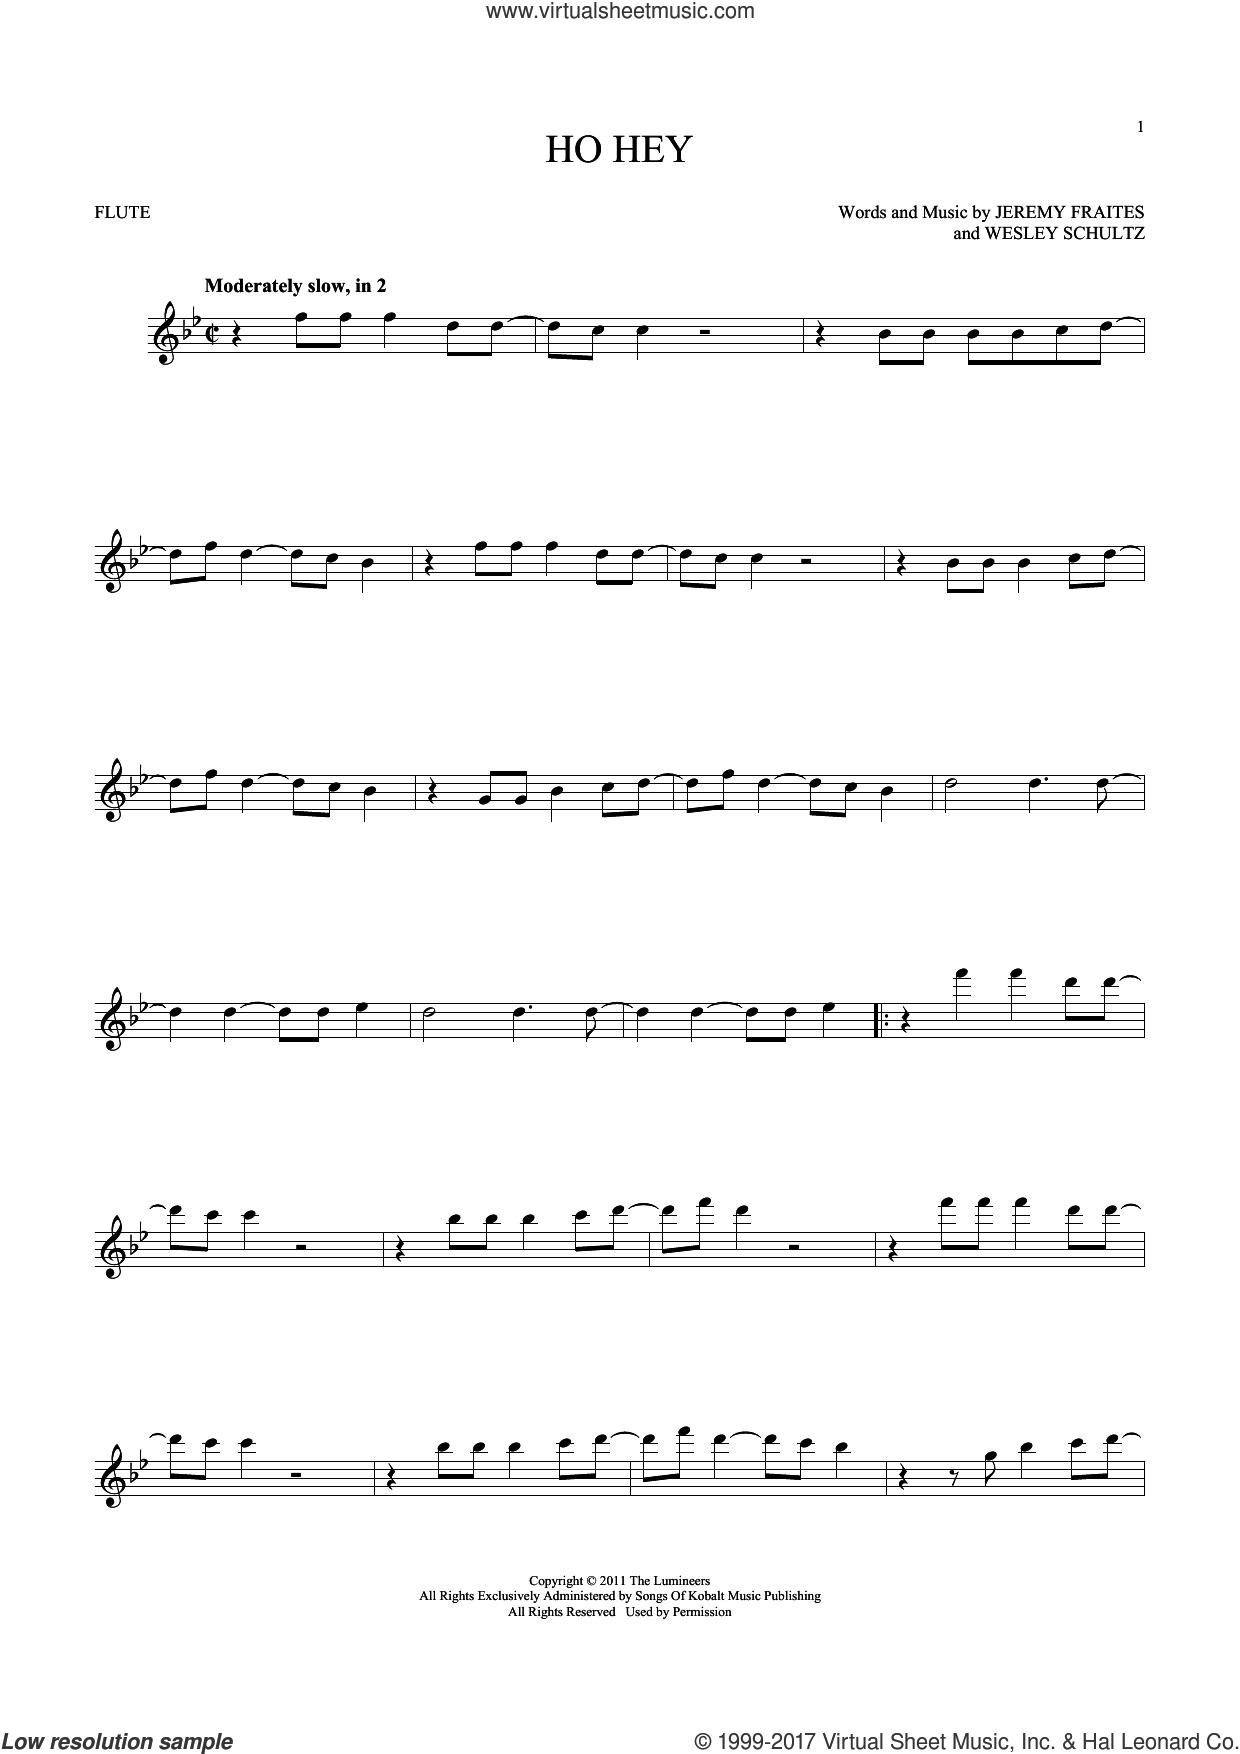 Ho Hey sheet music for flute solo by Wesley Schultz, The Lumineers and Jeremy Fraites. Score Image Preview.